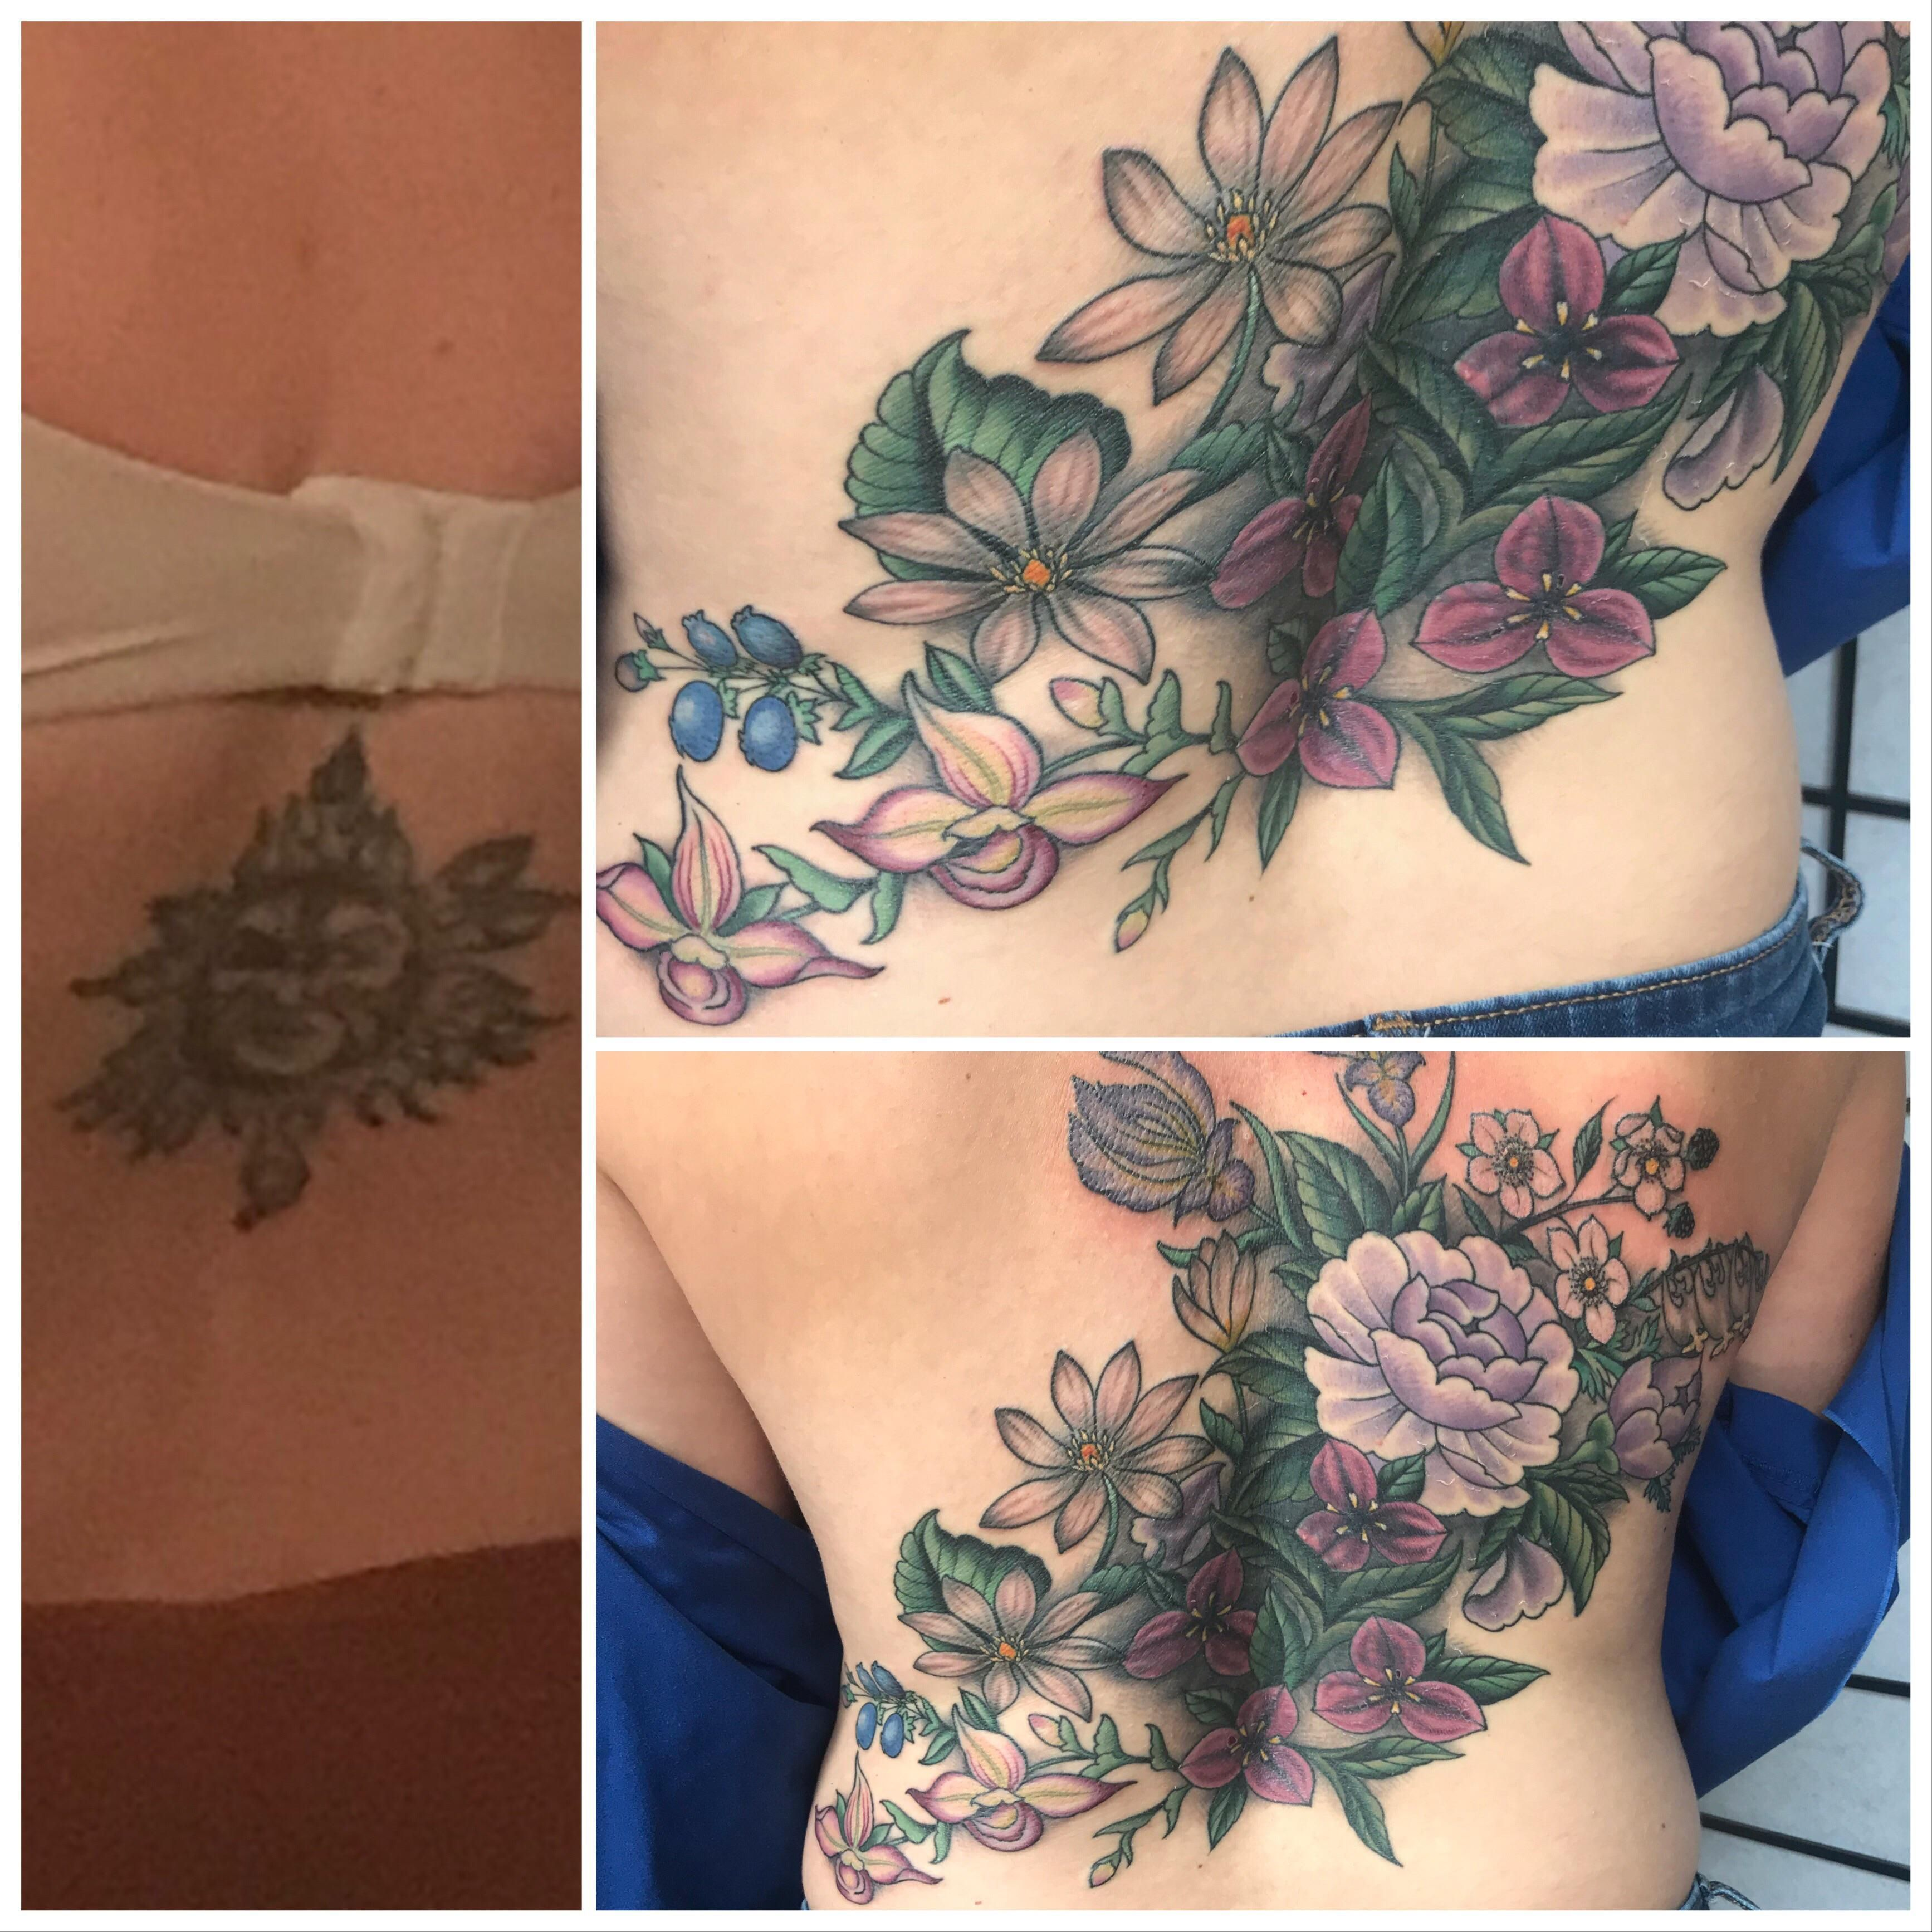 Finished a coverup with Nicholas Tidler at Purple Heart